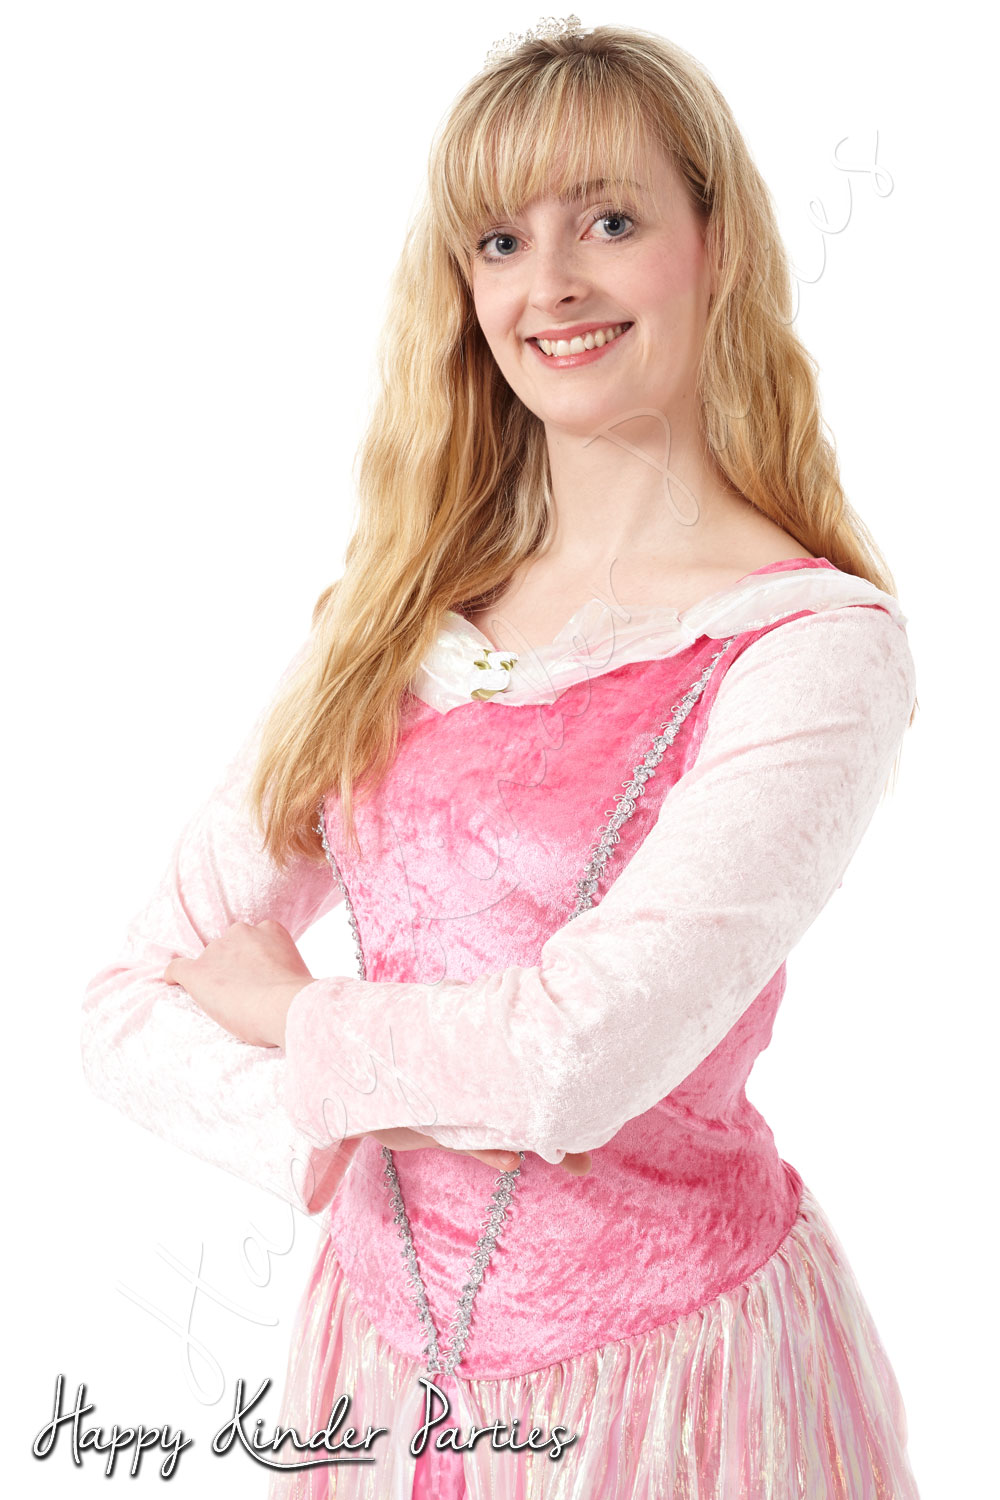 Princess Childrens Party Entertainer Costume